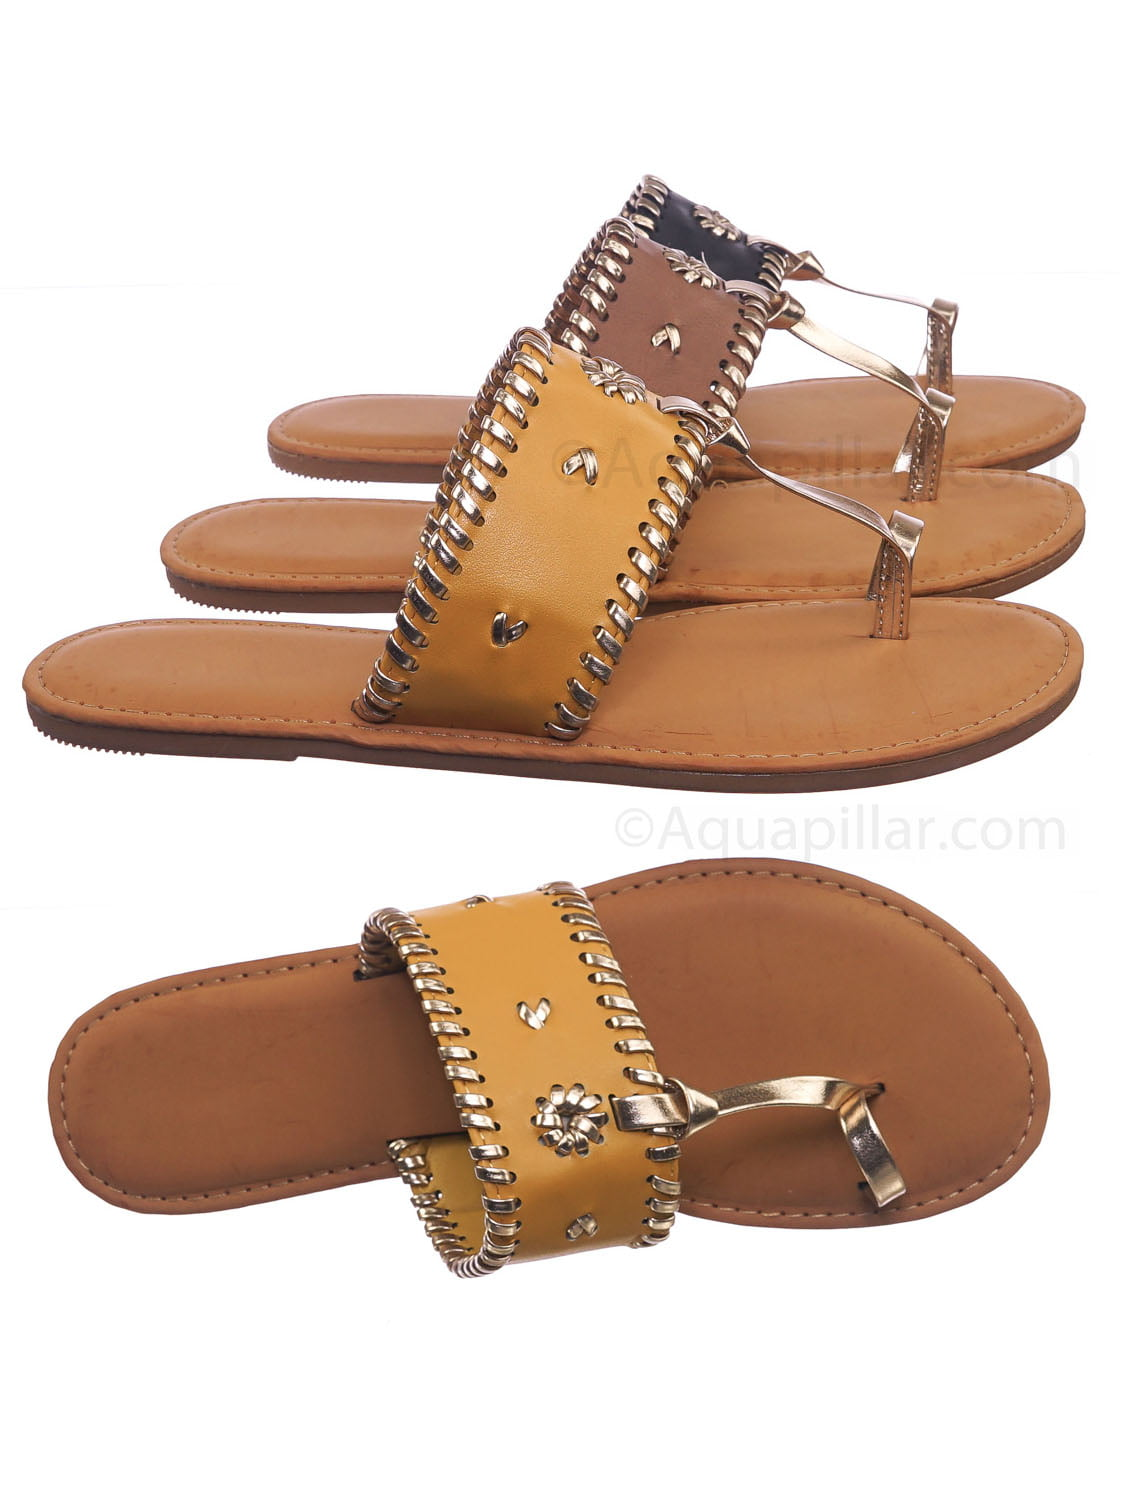 Gold Color BAMBOO Women T-Strap Slip on Triangle Flat Sandals Shoes Size 7